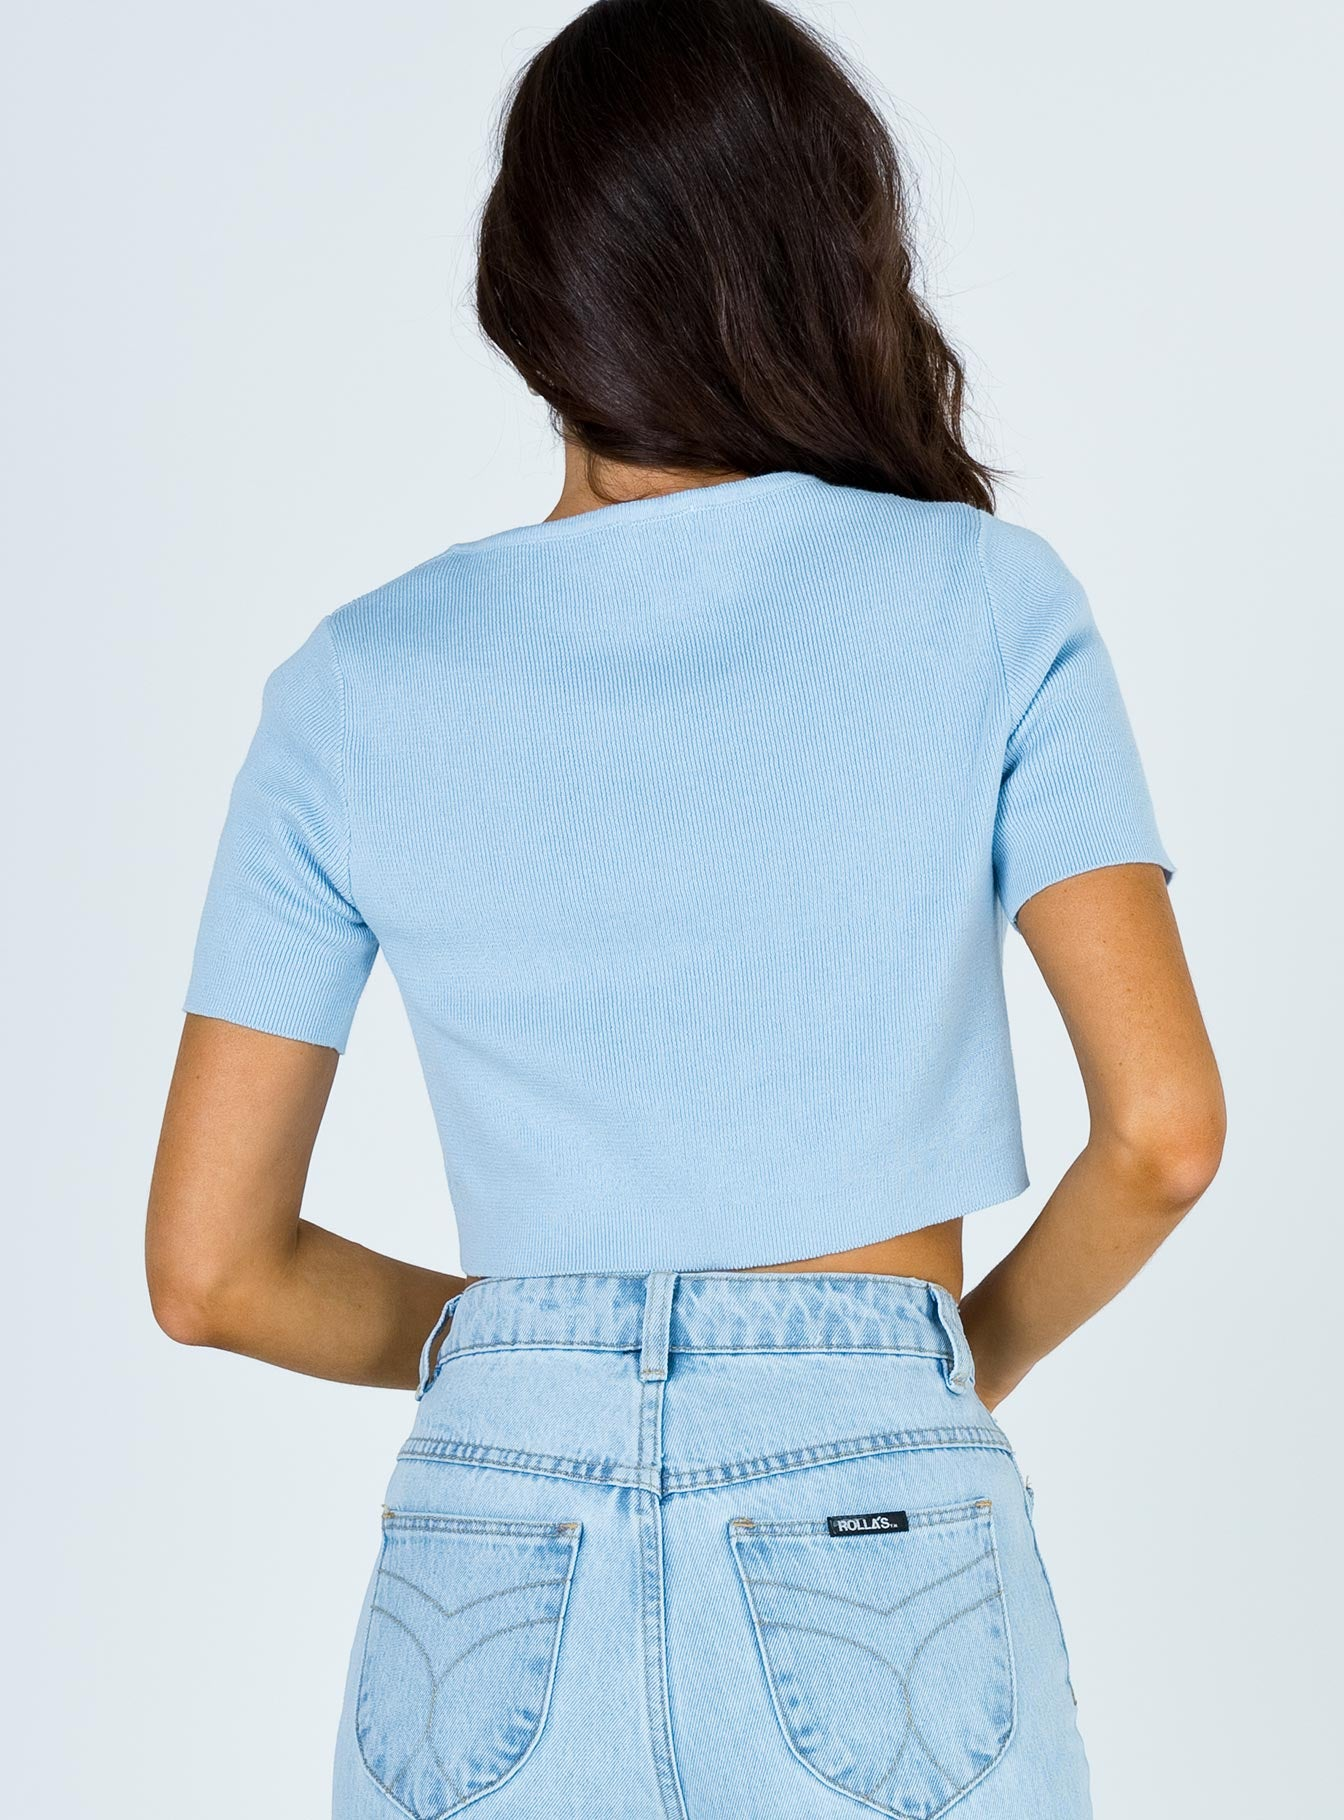 The Jayden Top Blue